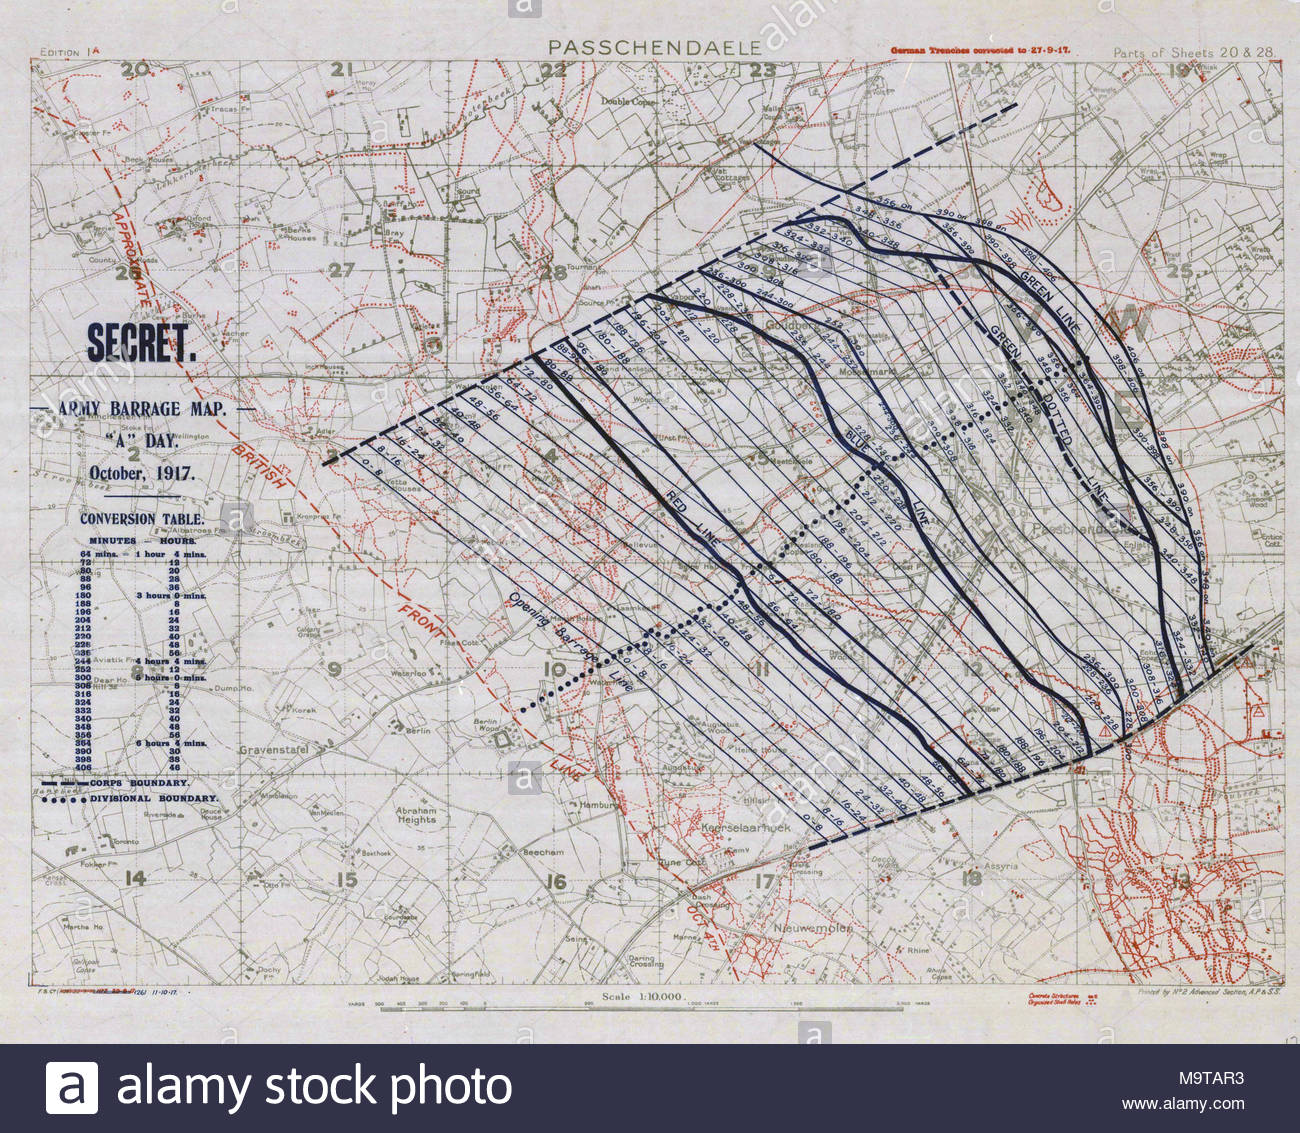 hight resolution of 1 10000 scale army artillery barrage map from the first battle of passchendaele during the third battle of ypres